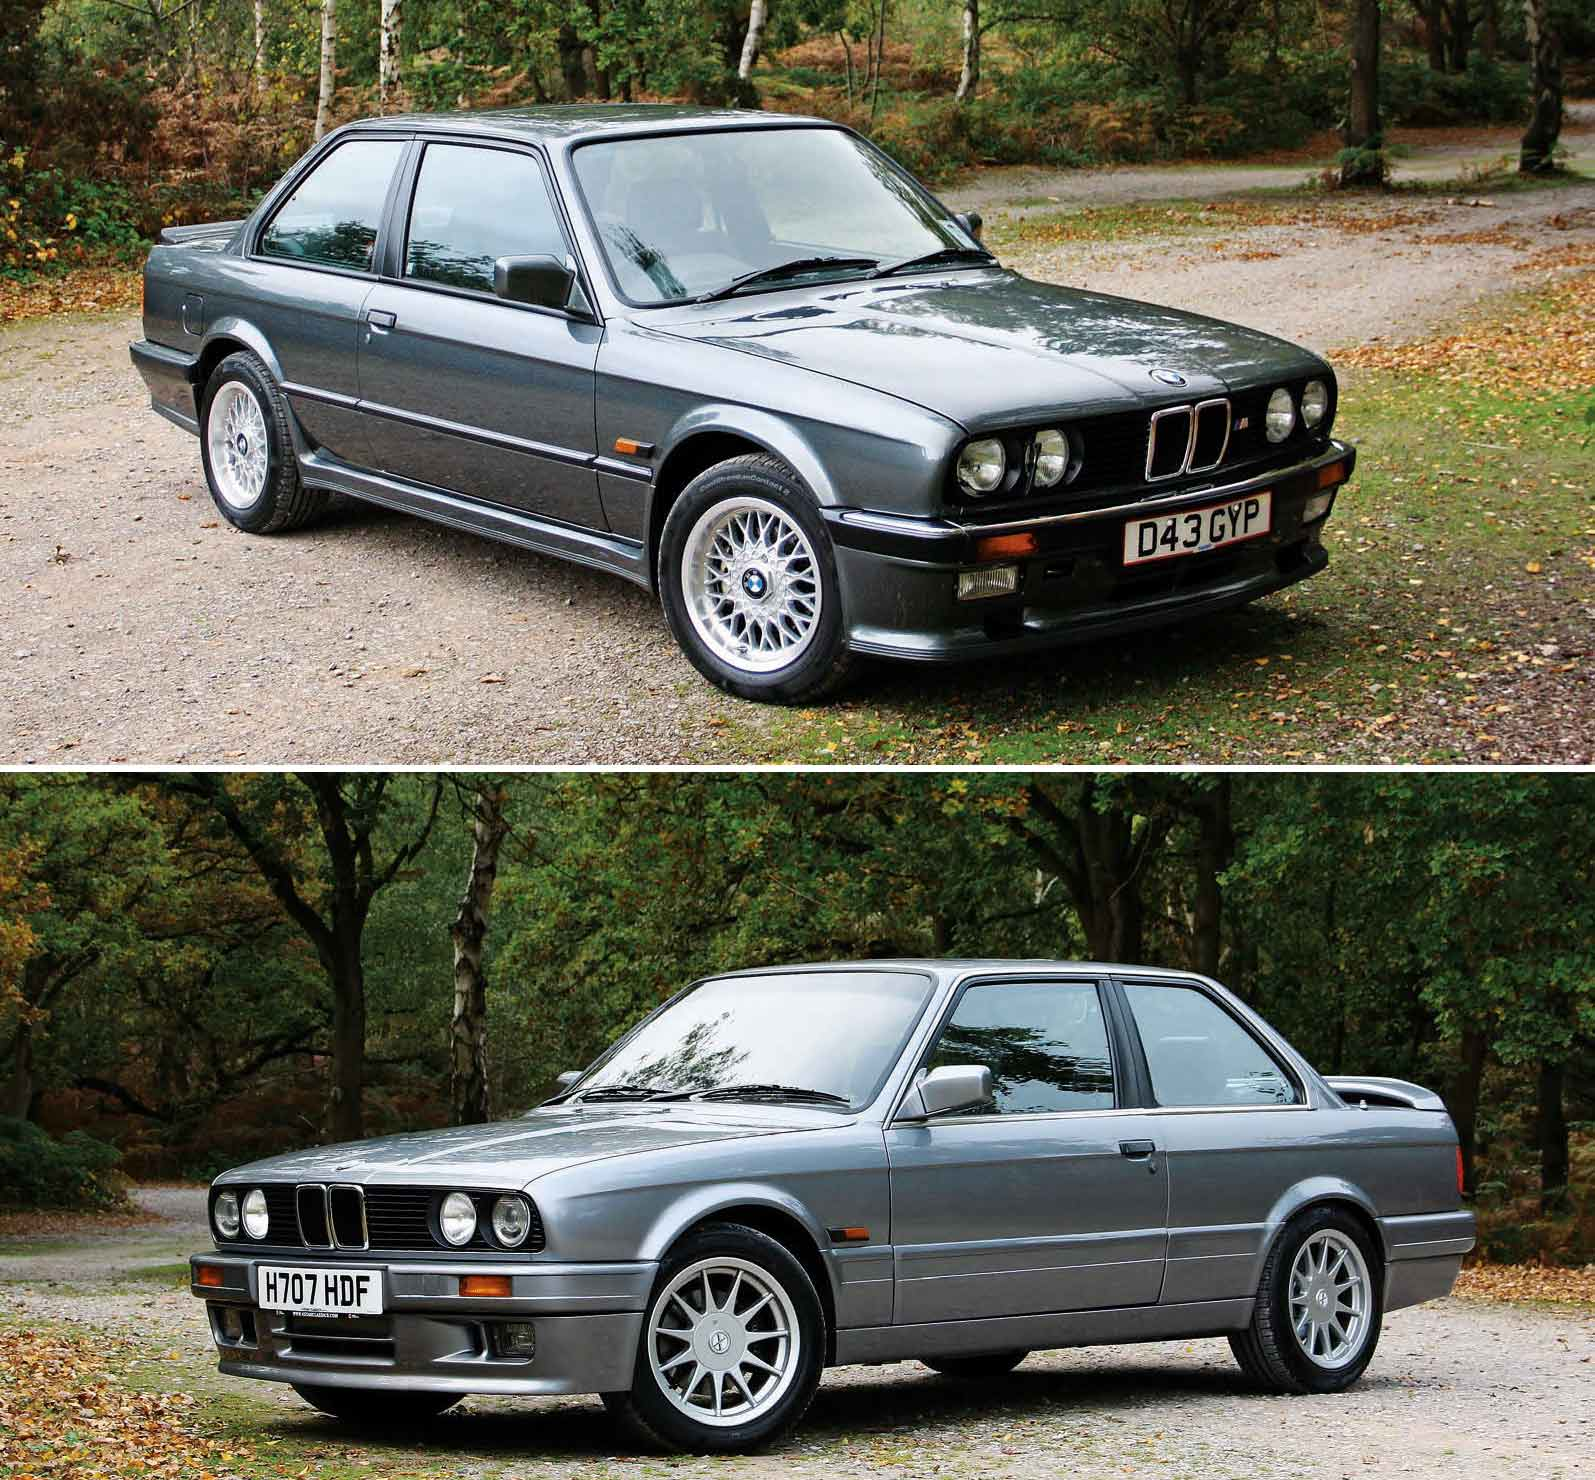 Fully-refurbished E30 Sports BMW 325i E30 M20 vs  BMW 328i